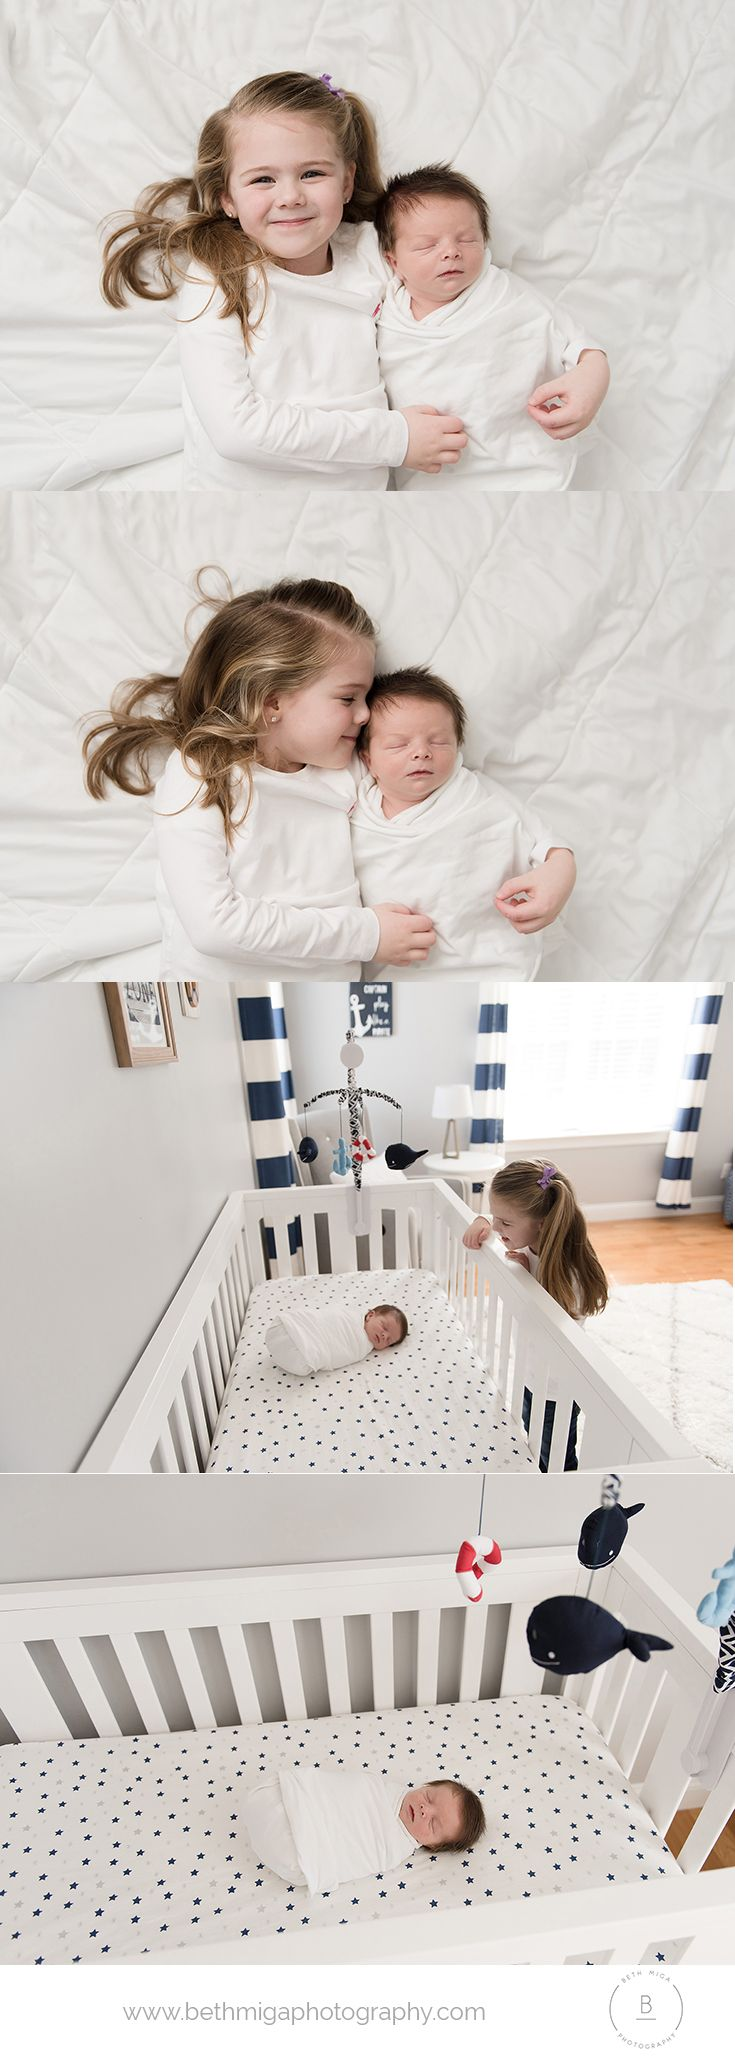 newborn and sibling pose ideas | newborn and sibling in nursery ...